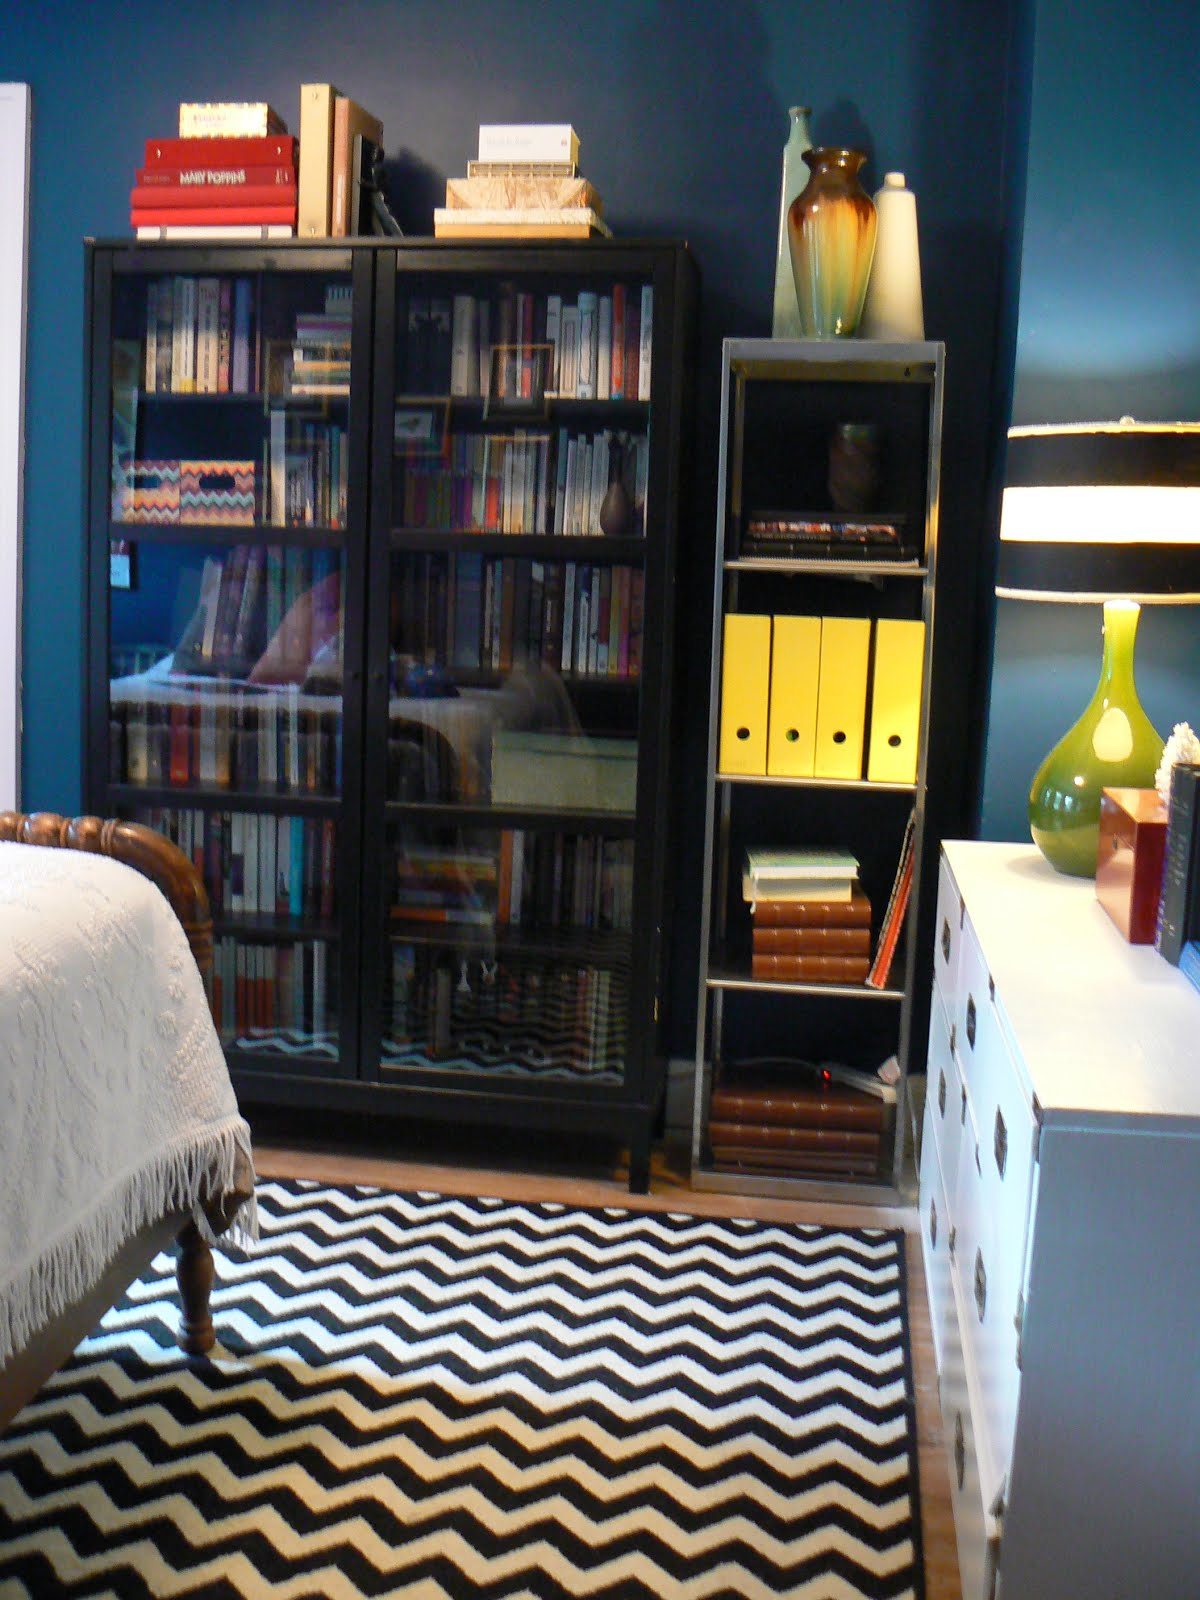 It Is A Very Low Pile Rug Which I Don T Mind S Bold Statement For Price Get Tired Of Rugs After Few Years So Want